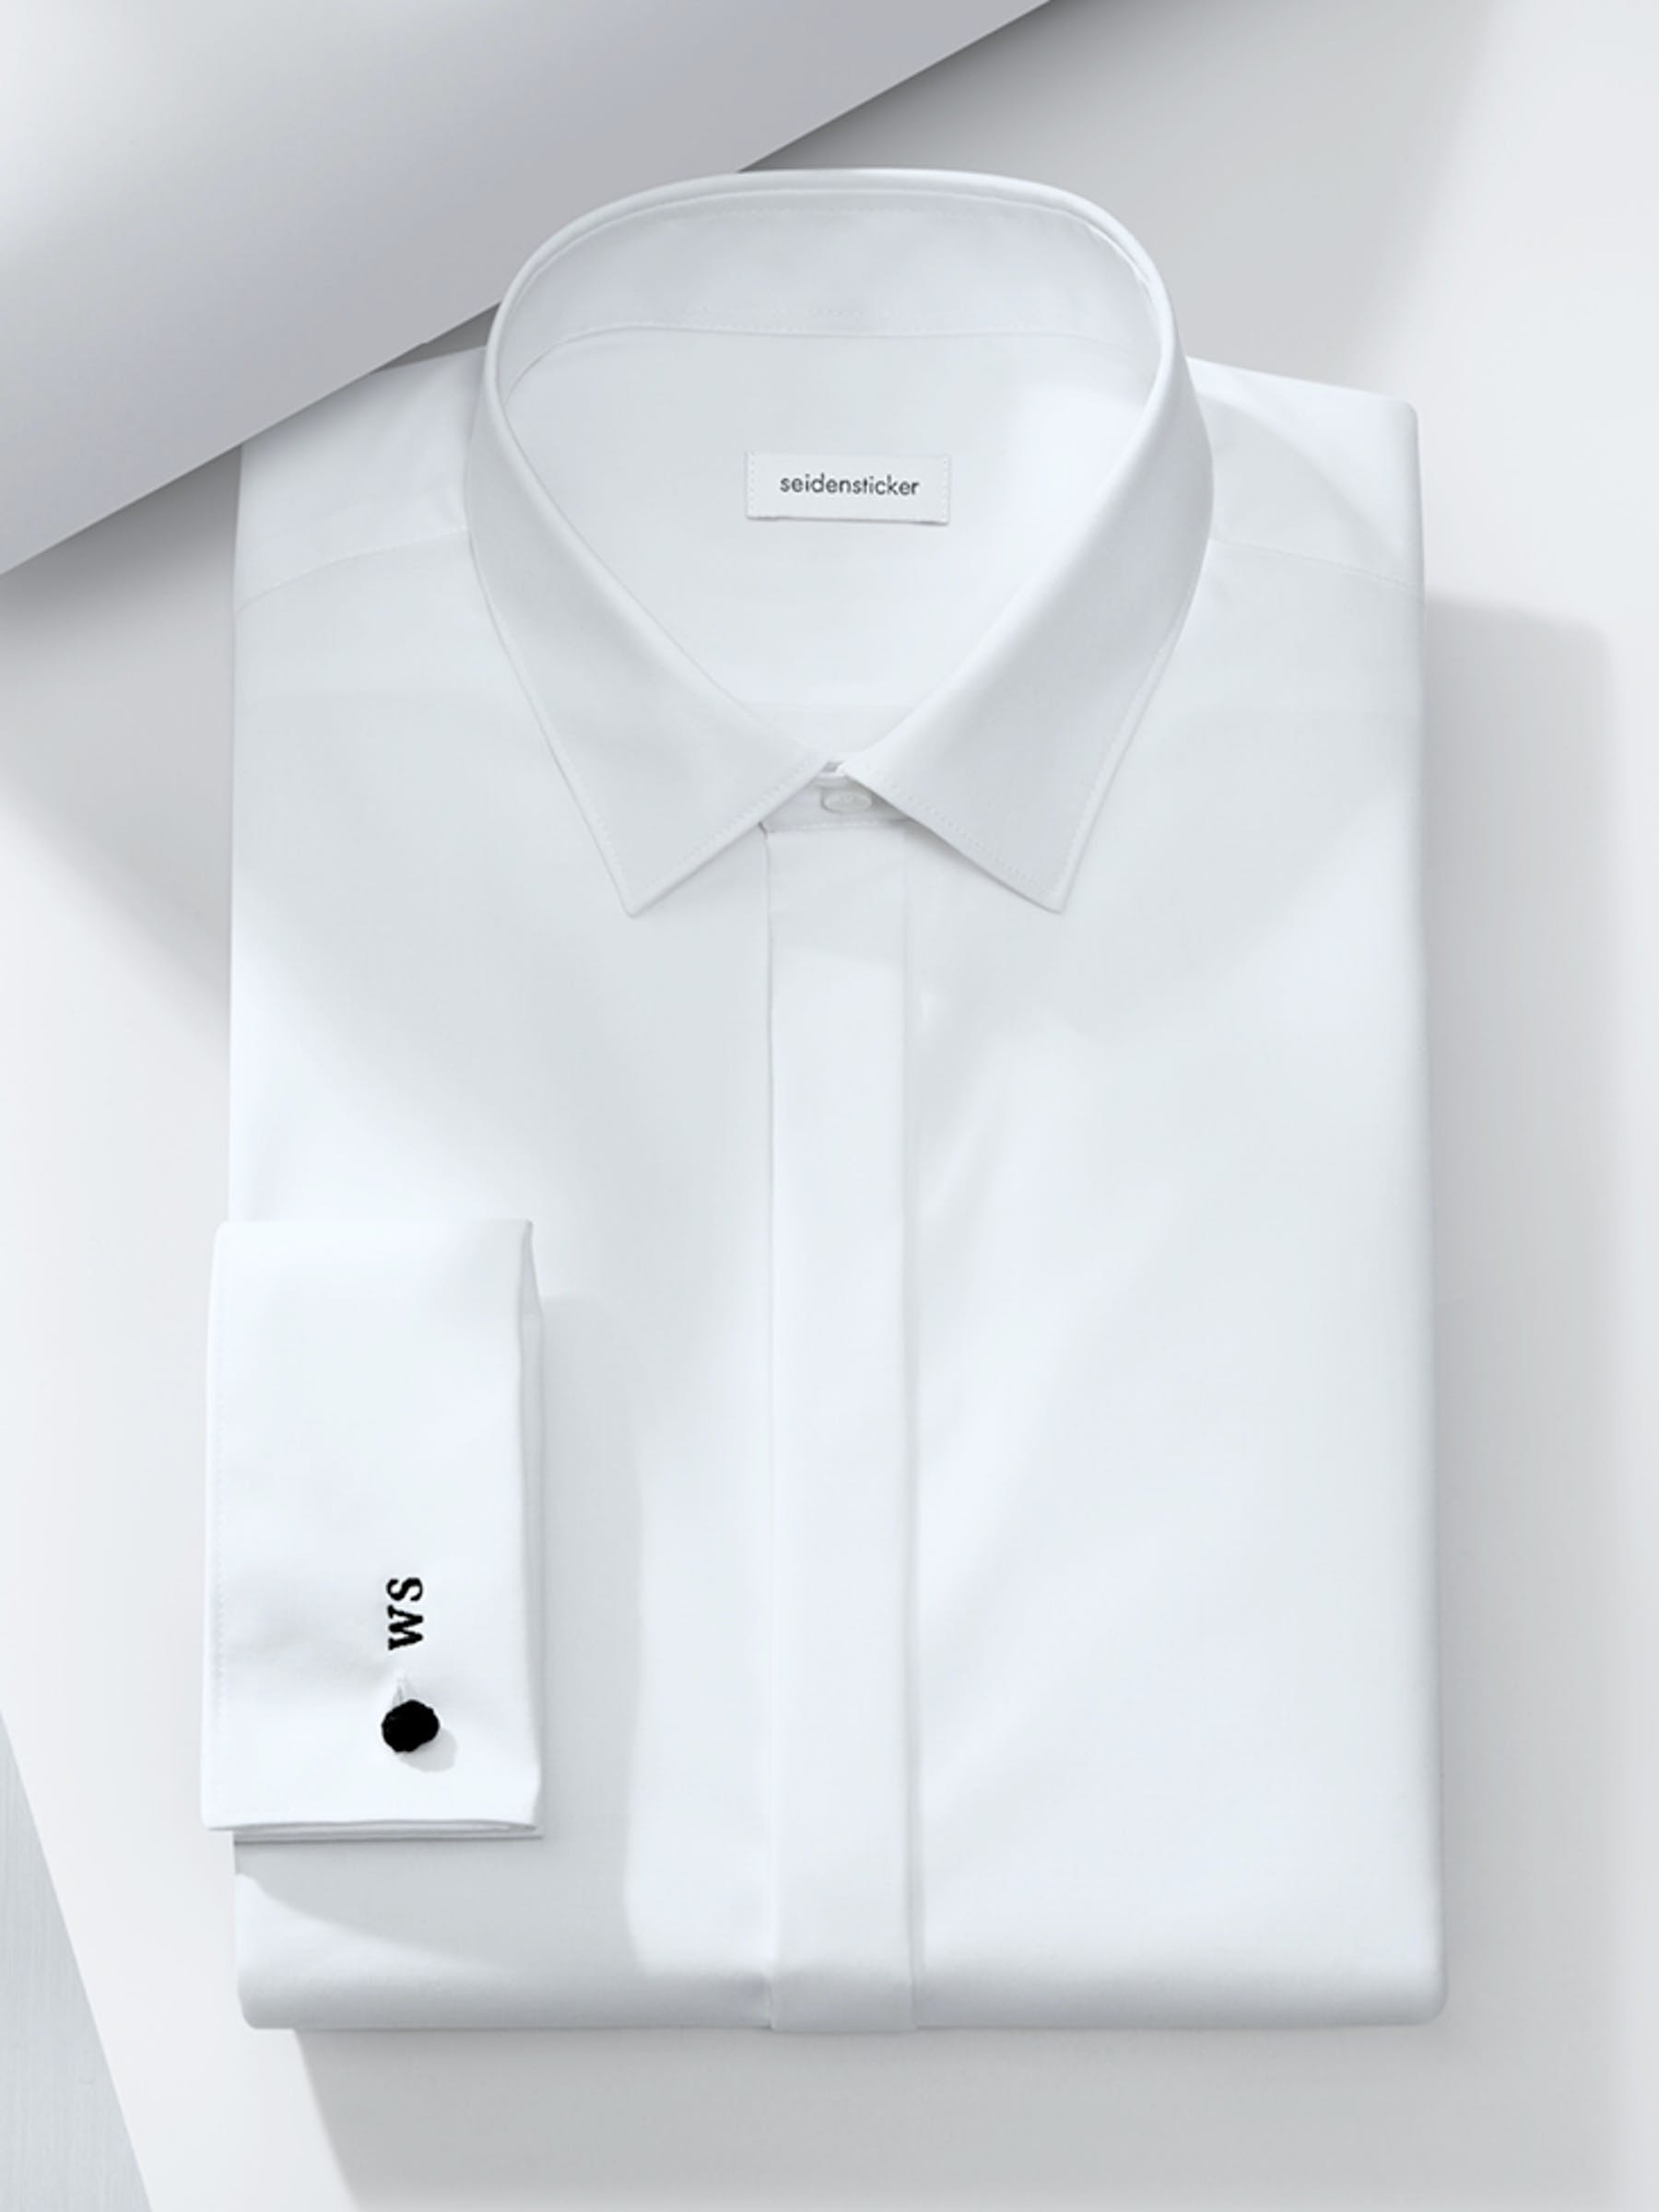 Shirts with monogram | Seidensticker